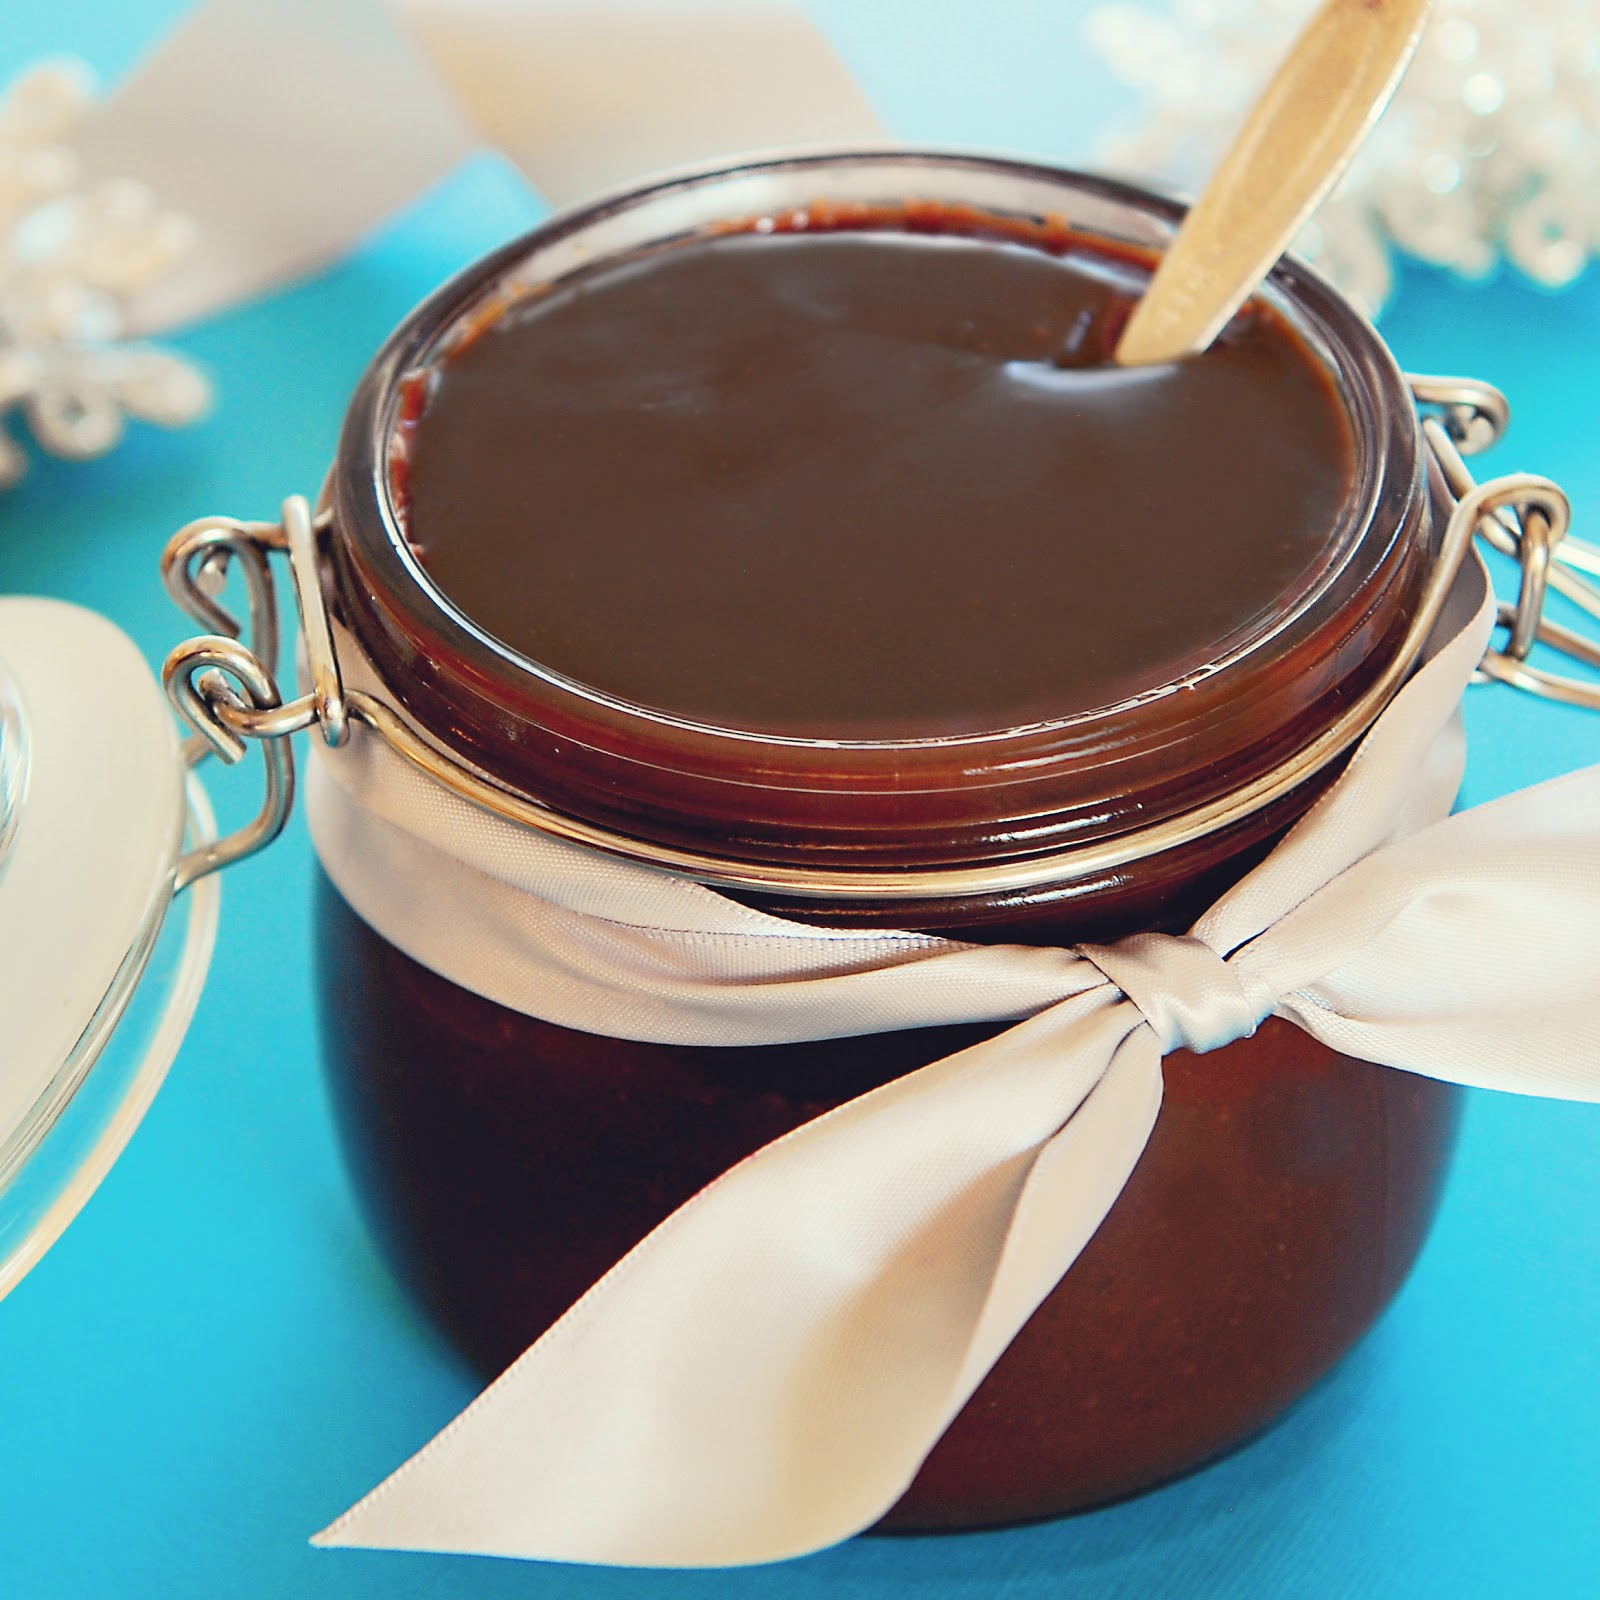 Simply Gourmet: Hot Fudge Sauce